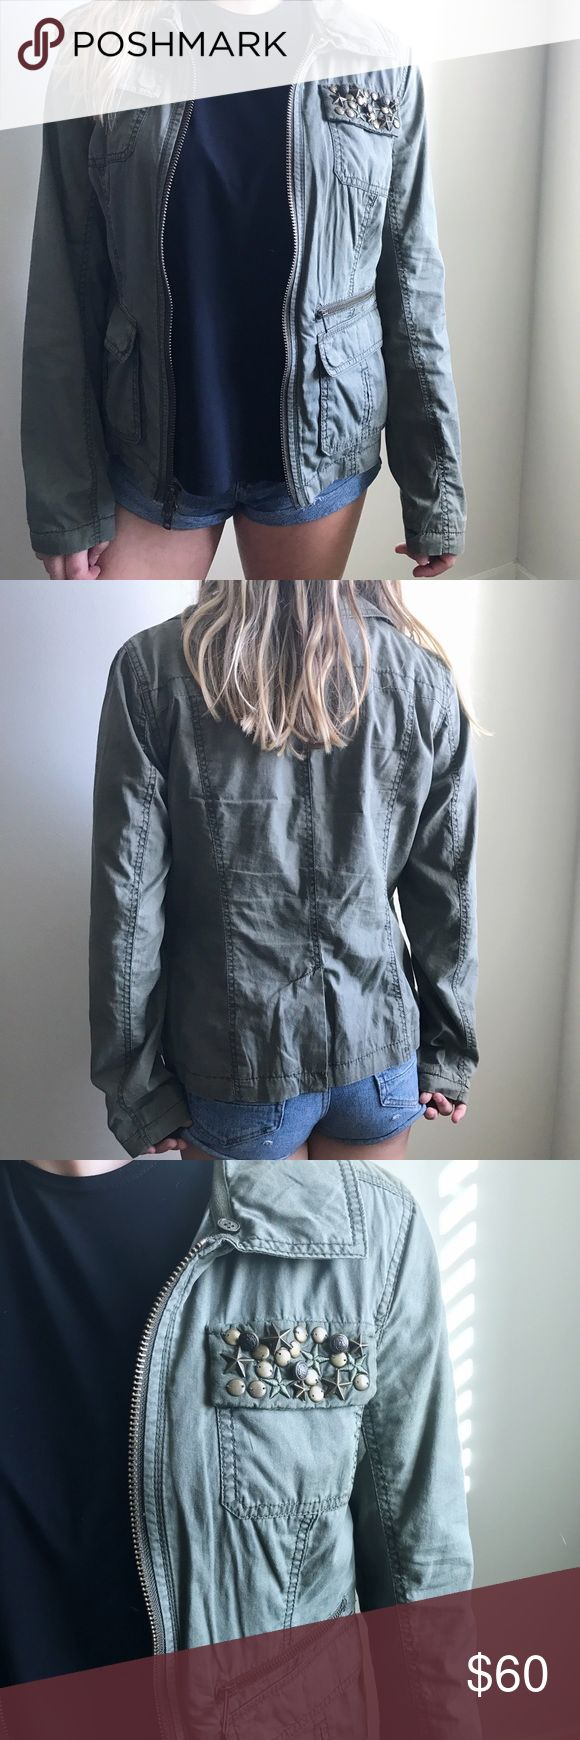 Army Green Jacket Express Army jacket with studs and gold zipper. Size small. The color is true army green Express Jackets & Coats Jean Jackets